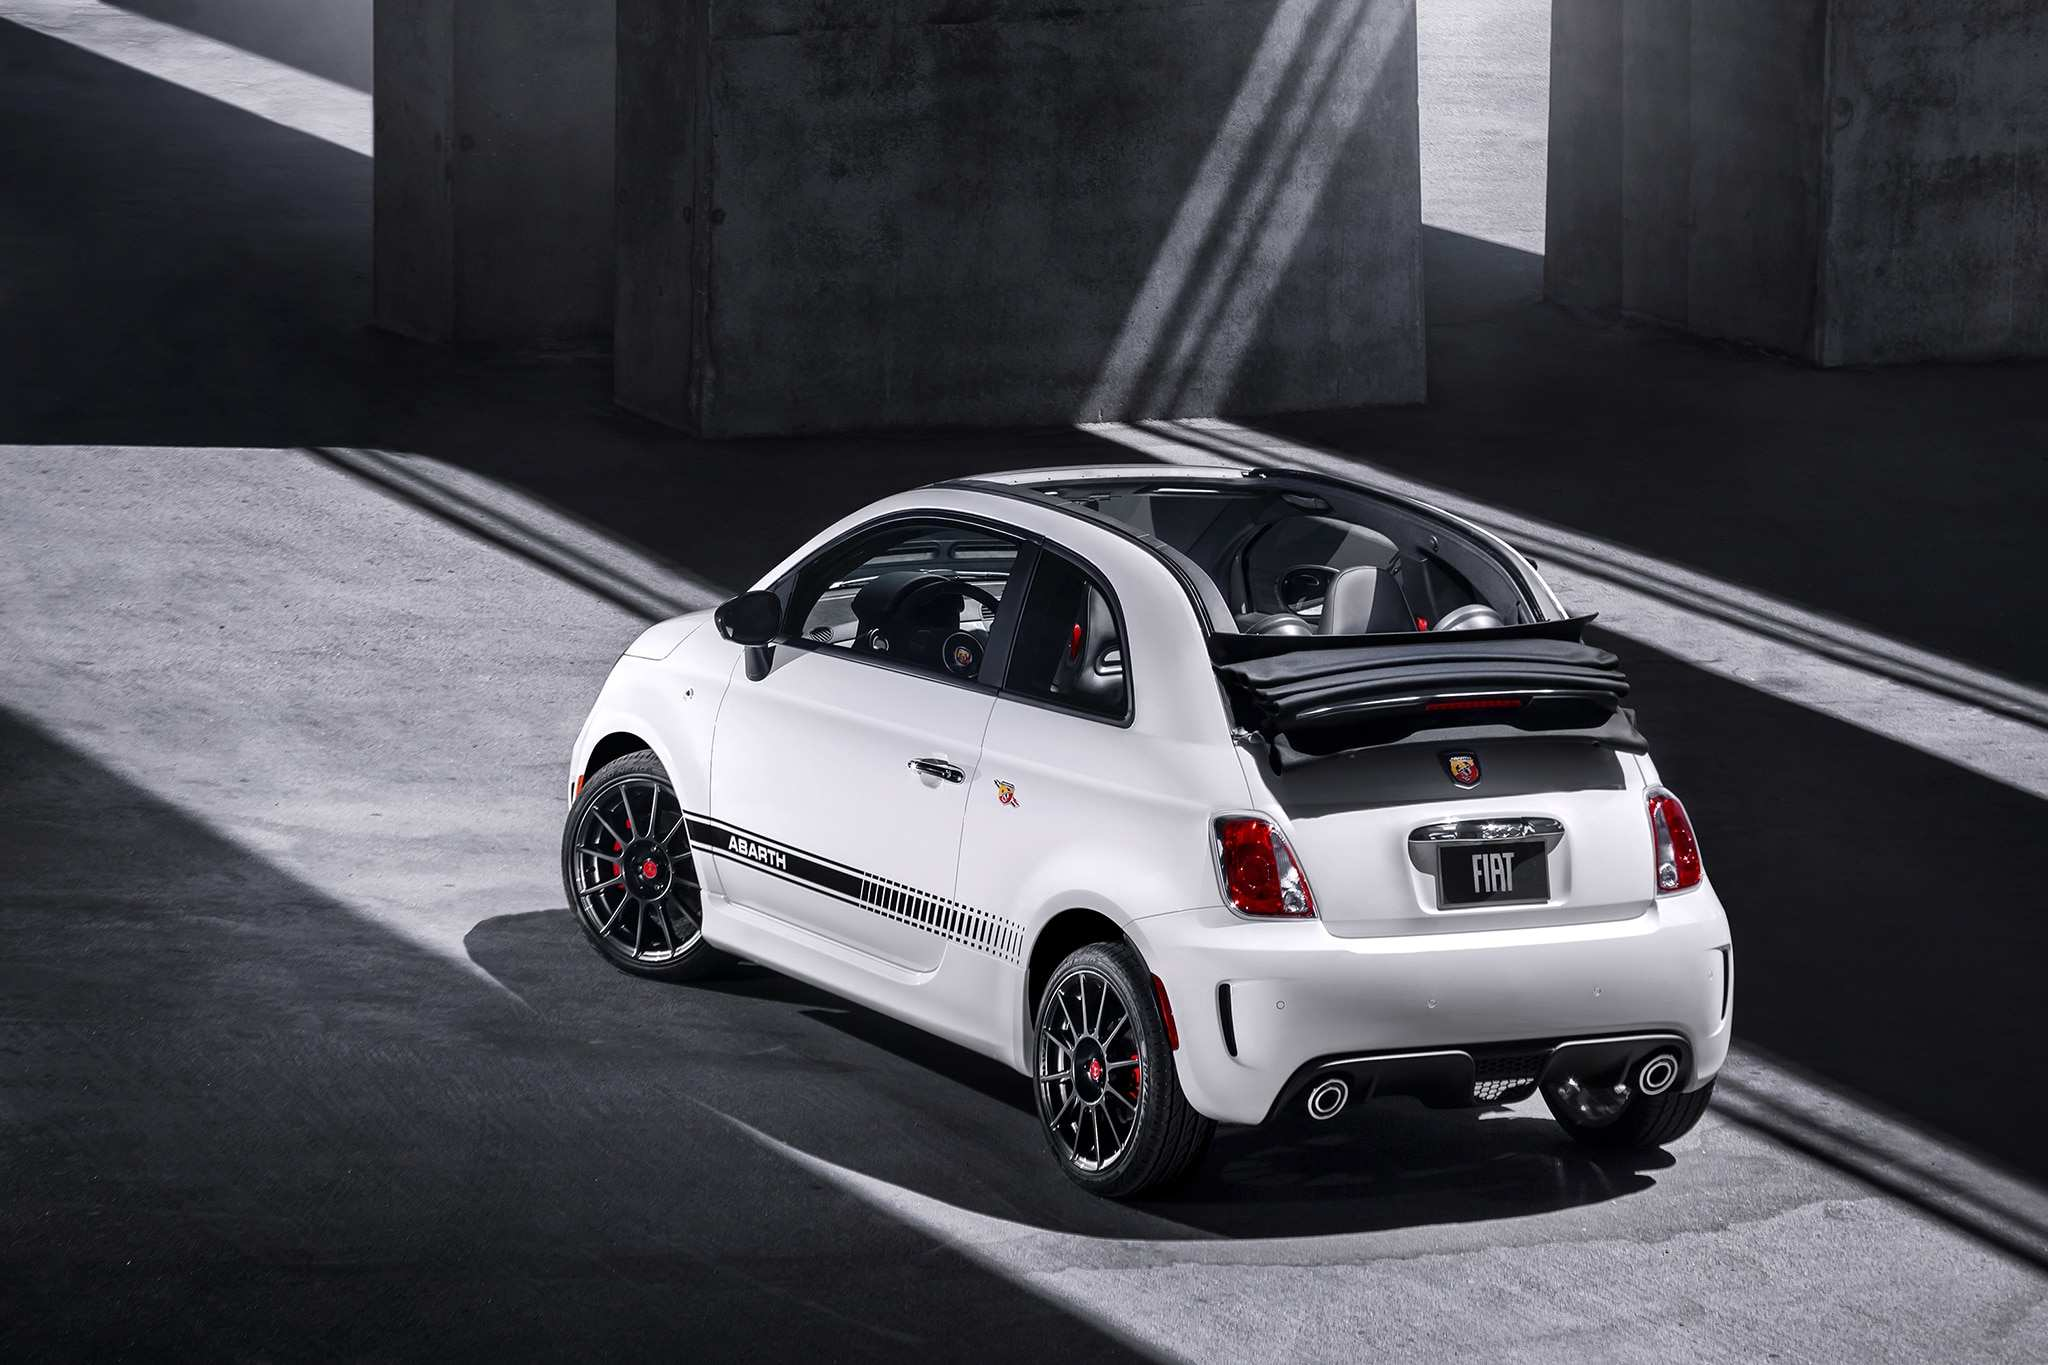 74 The 2019 Fiat 500 Abarth Spy Shoot for 2019 Fiat 500 Abarth